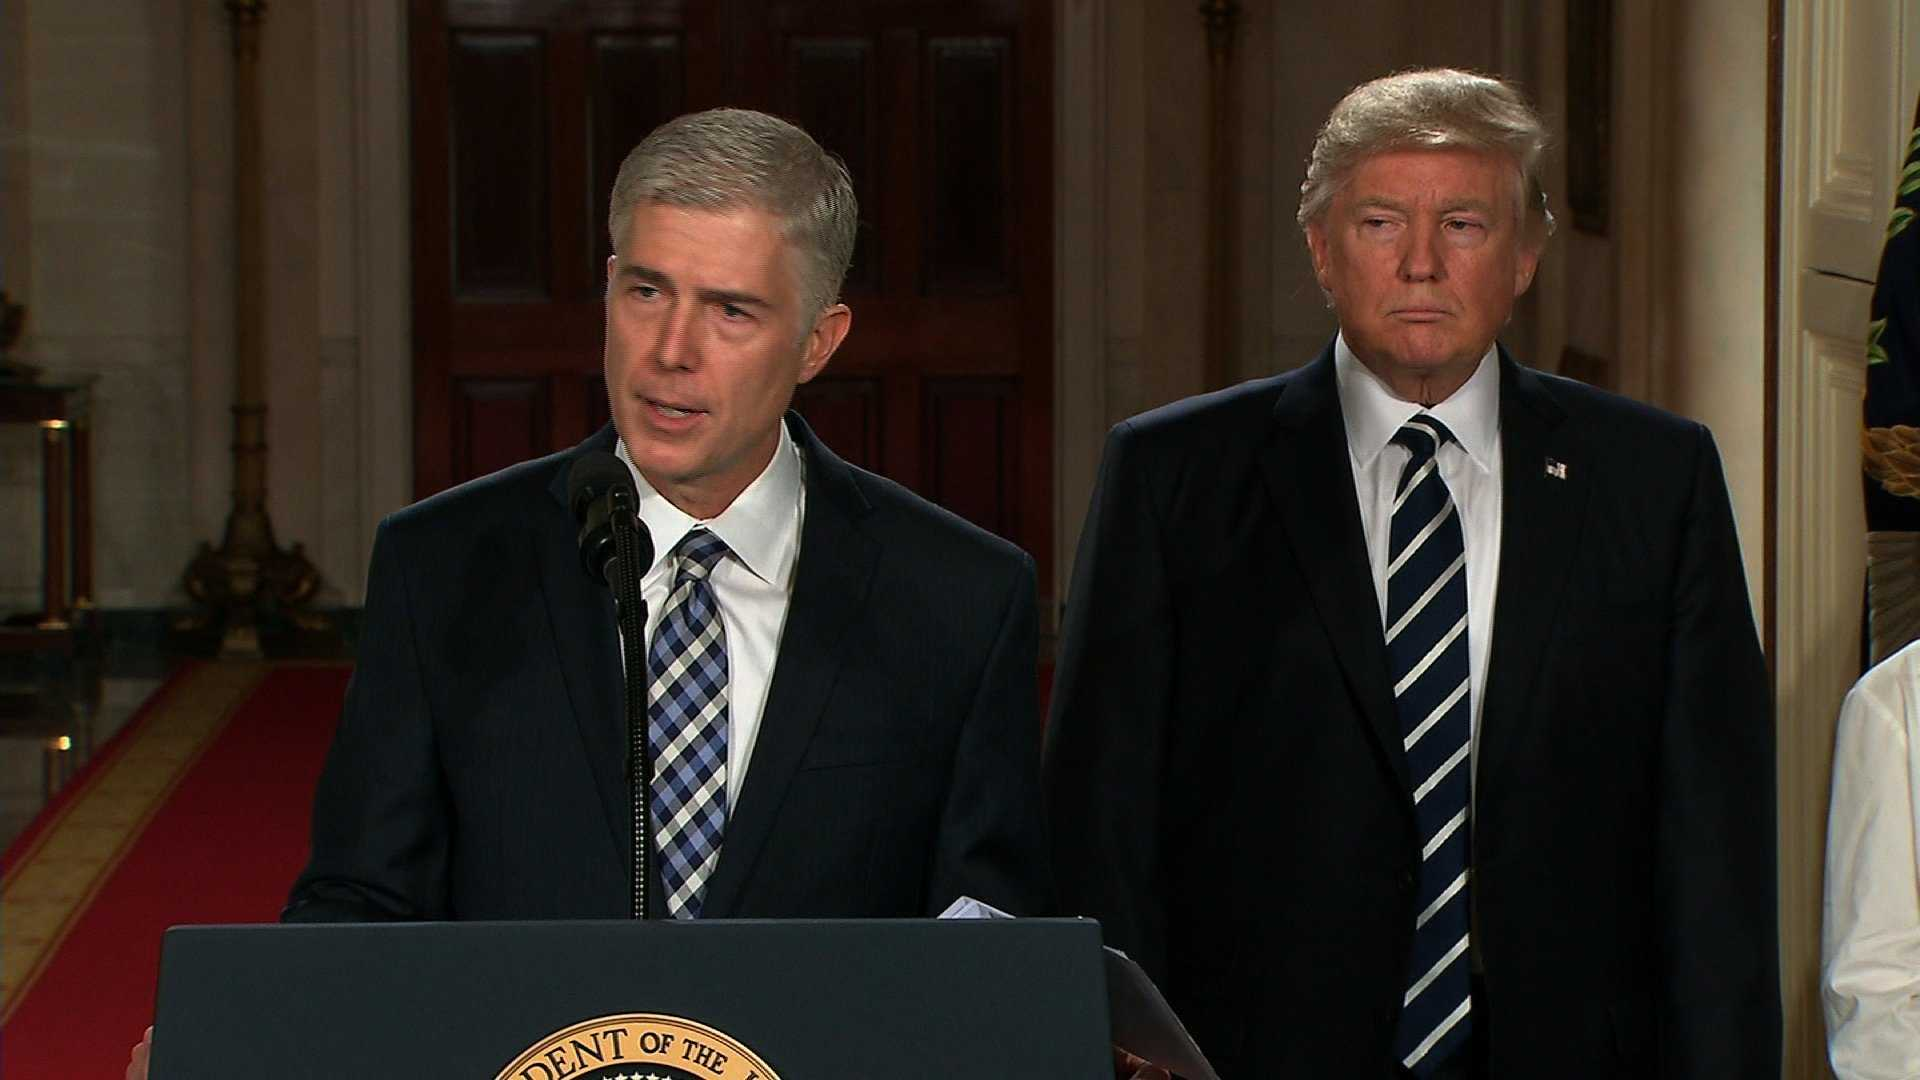 Neil Gorsuch speaks after President Donald Trump nominated him for the Supreme Court on Jan. 31, 2017.